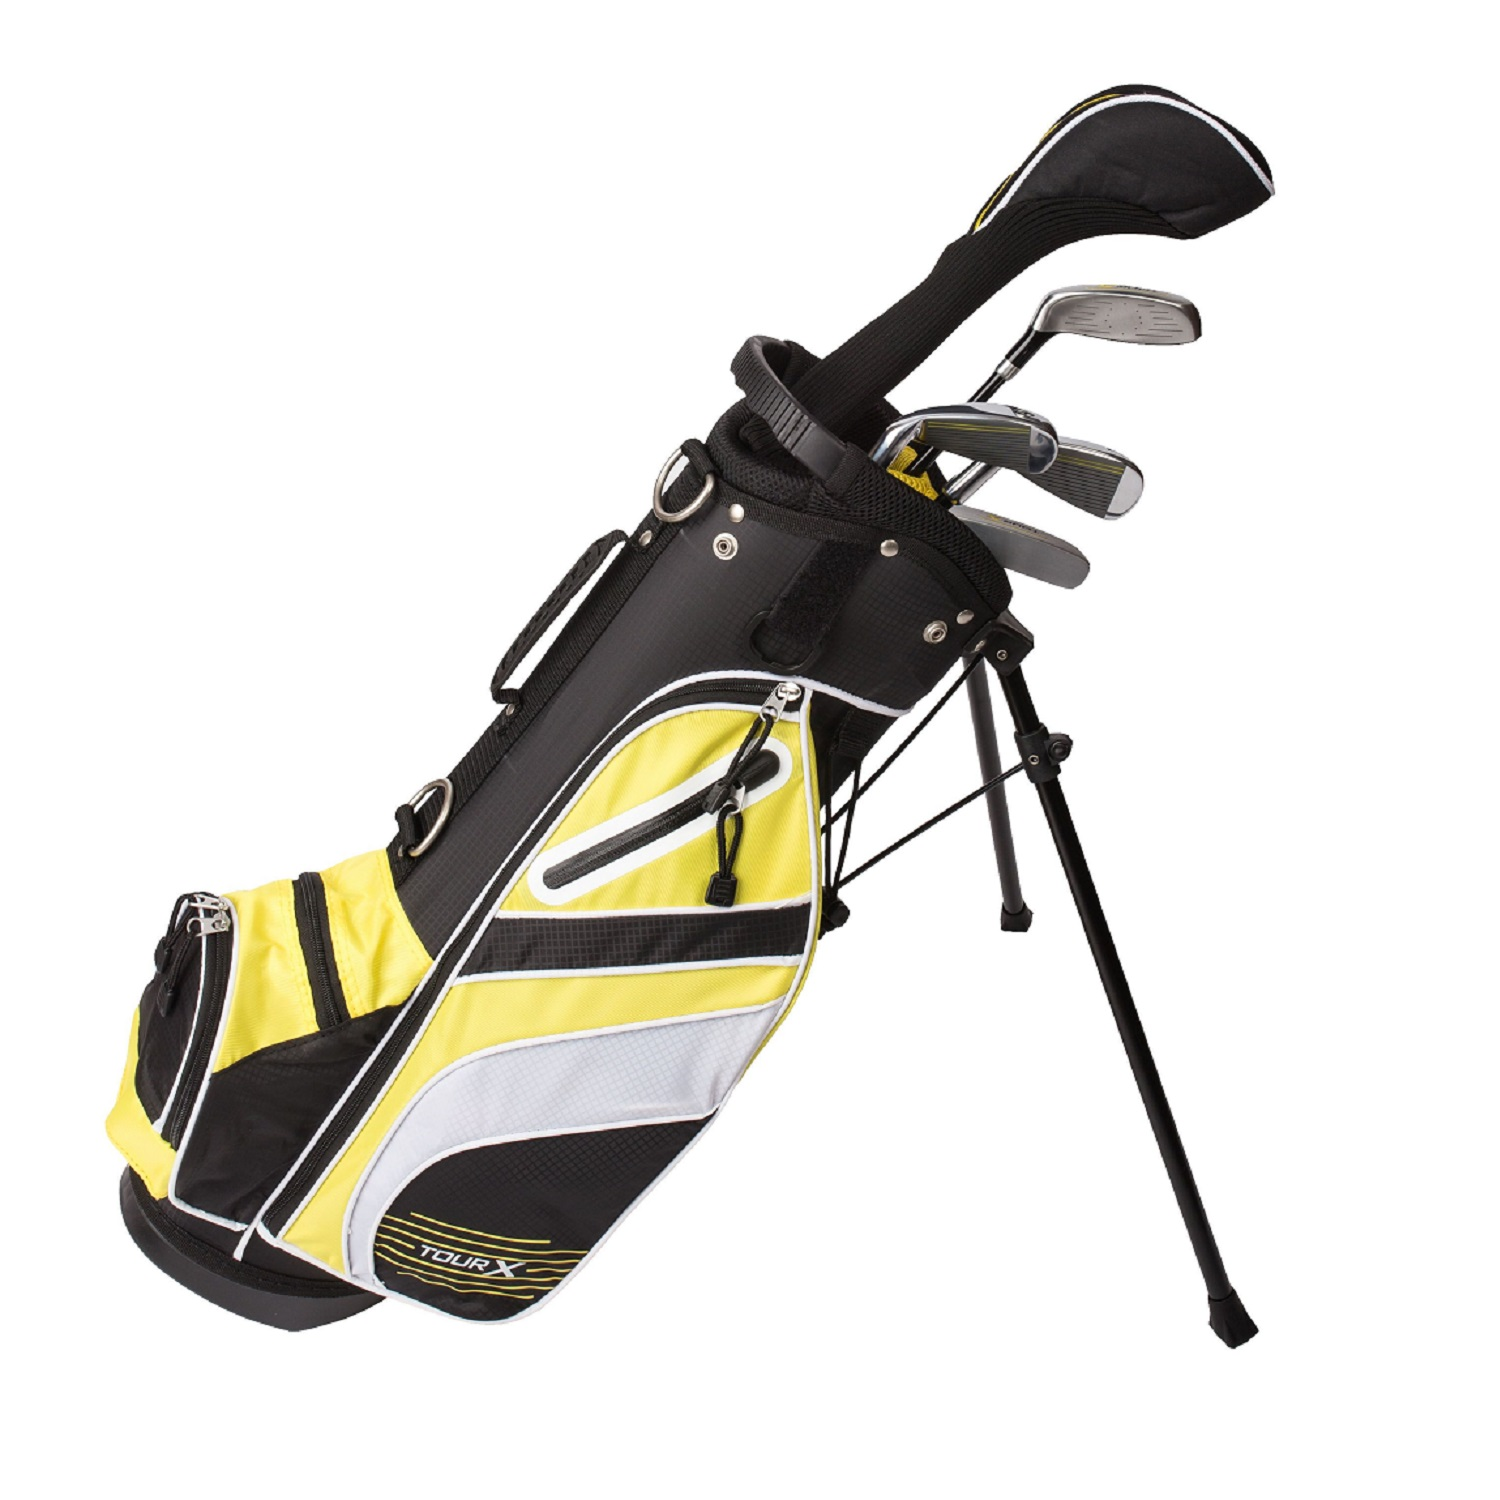 Tour X Size 1 5pc Jr Golf Set w/Stand Bag